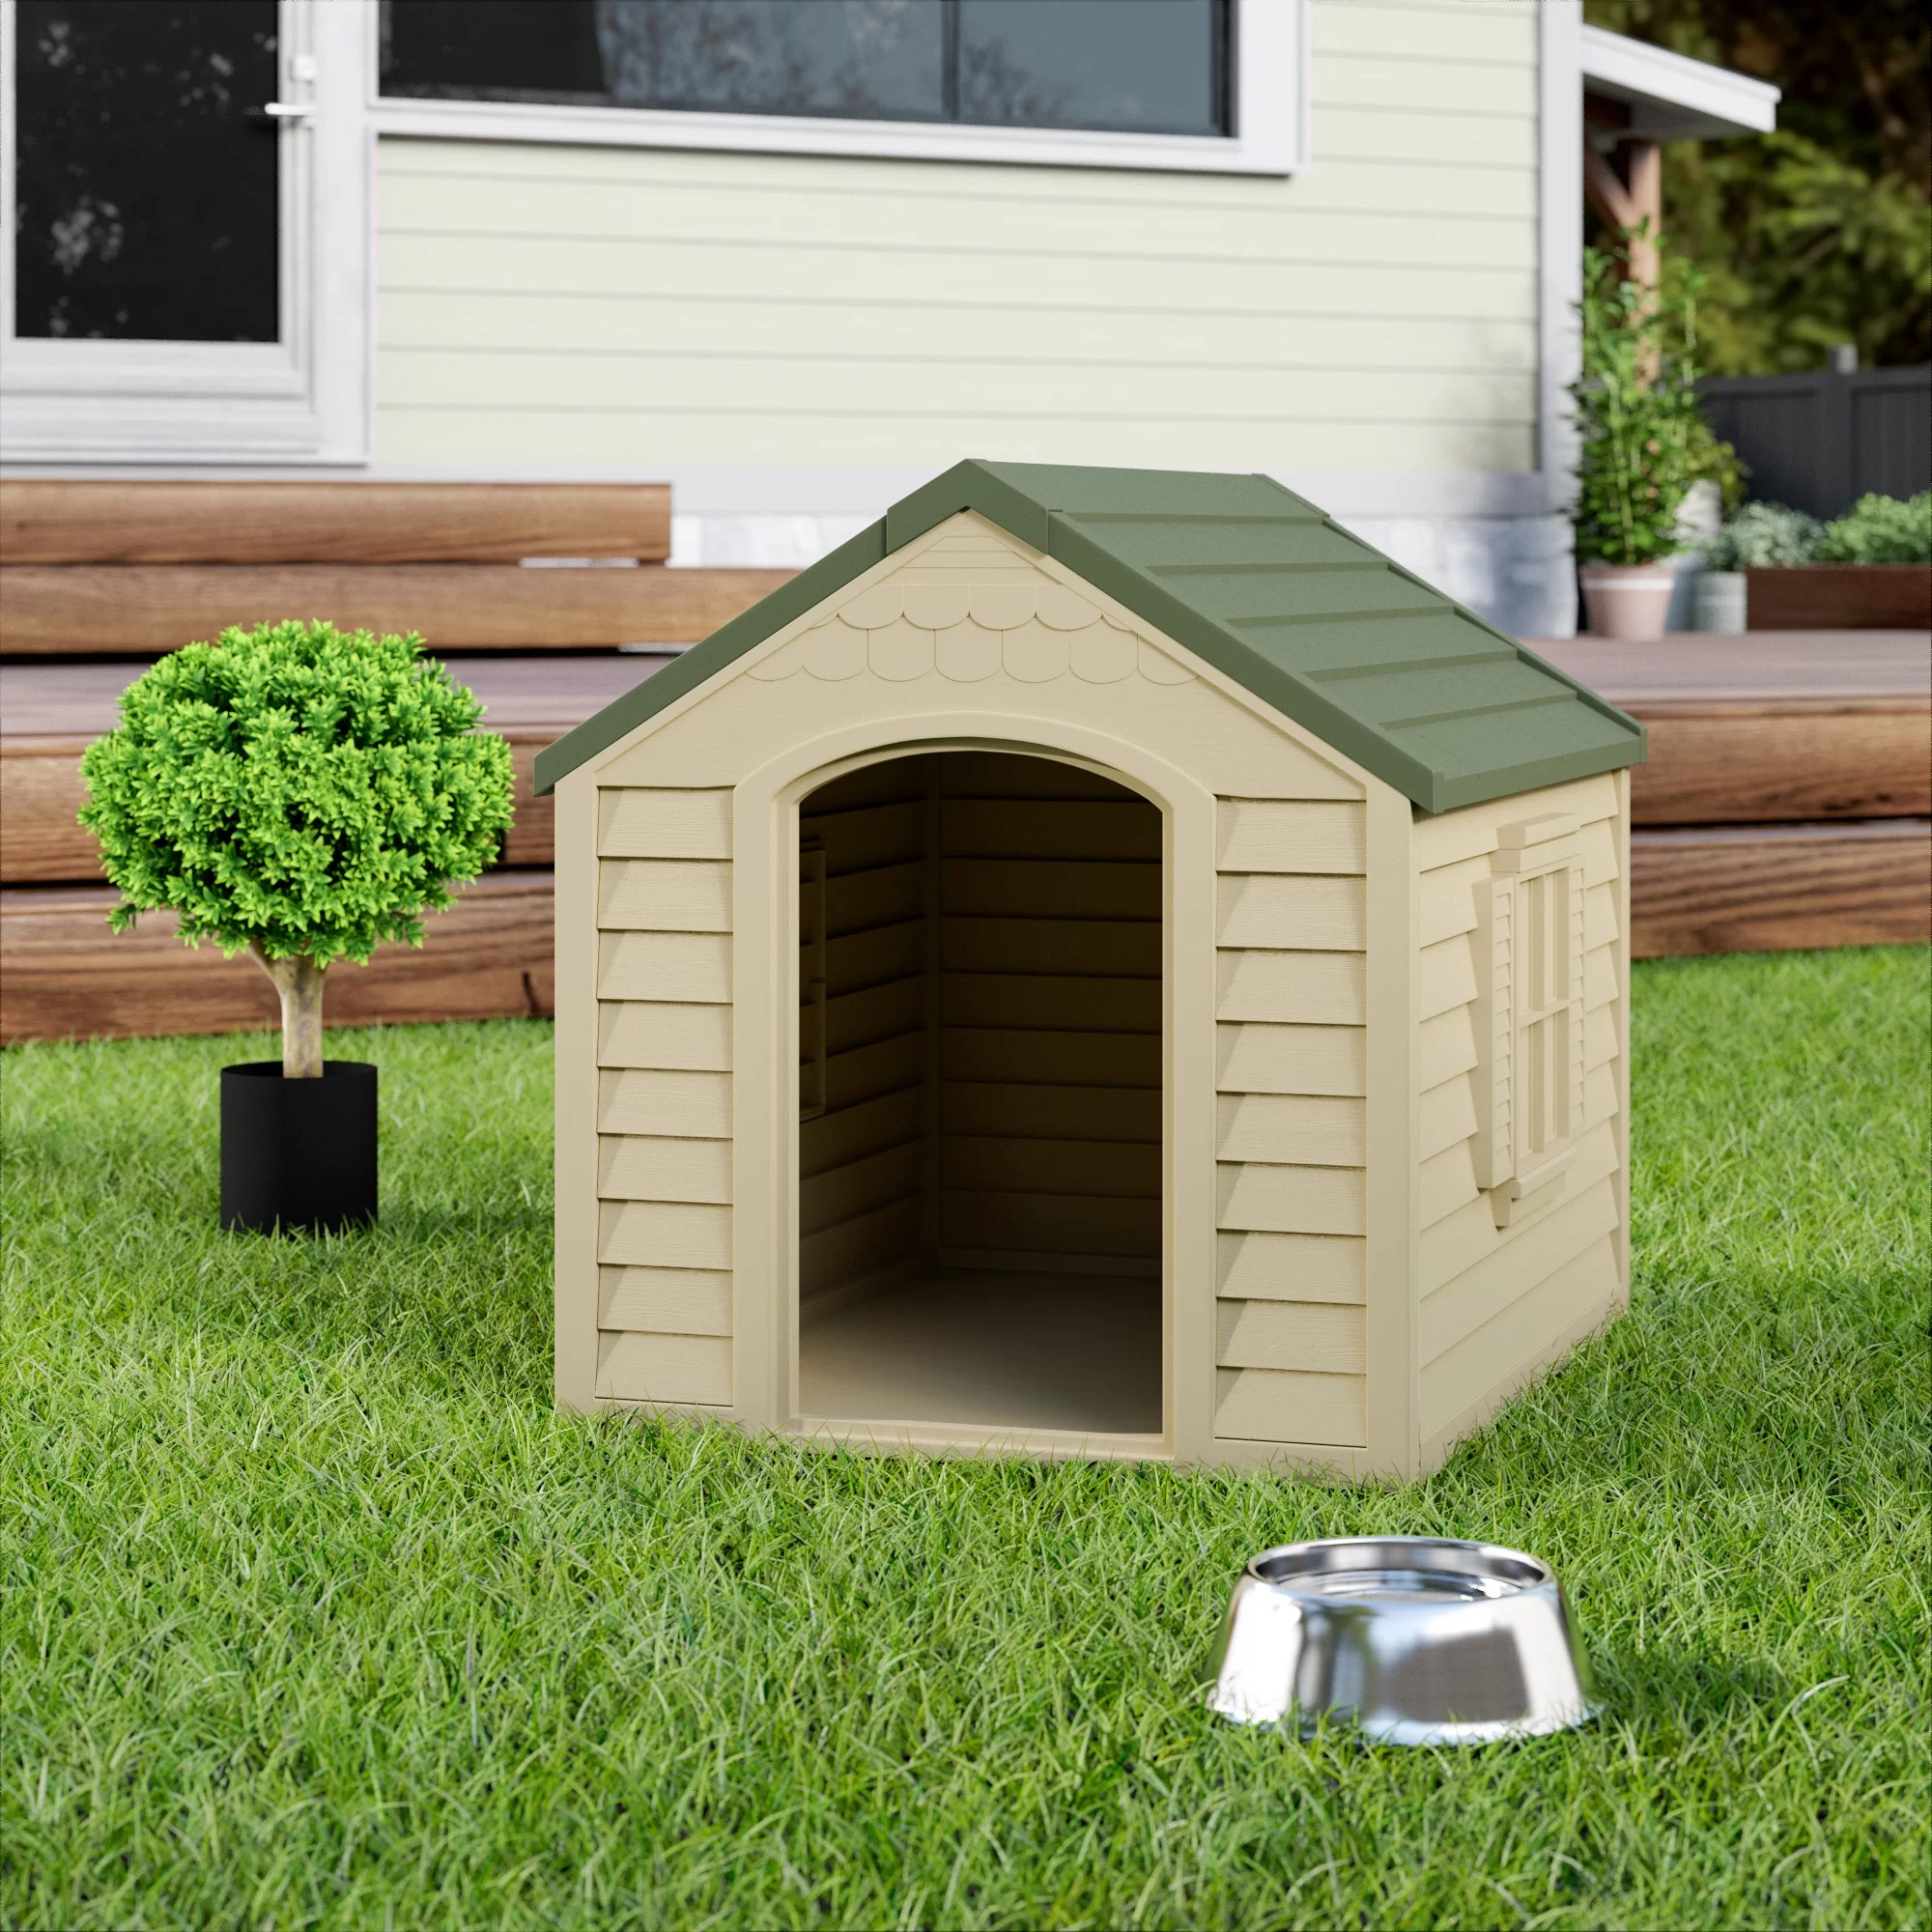 Porch Dog Houses You Ll Love In 2021 Wayfair